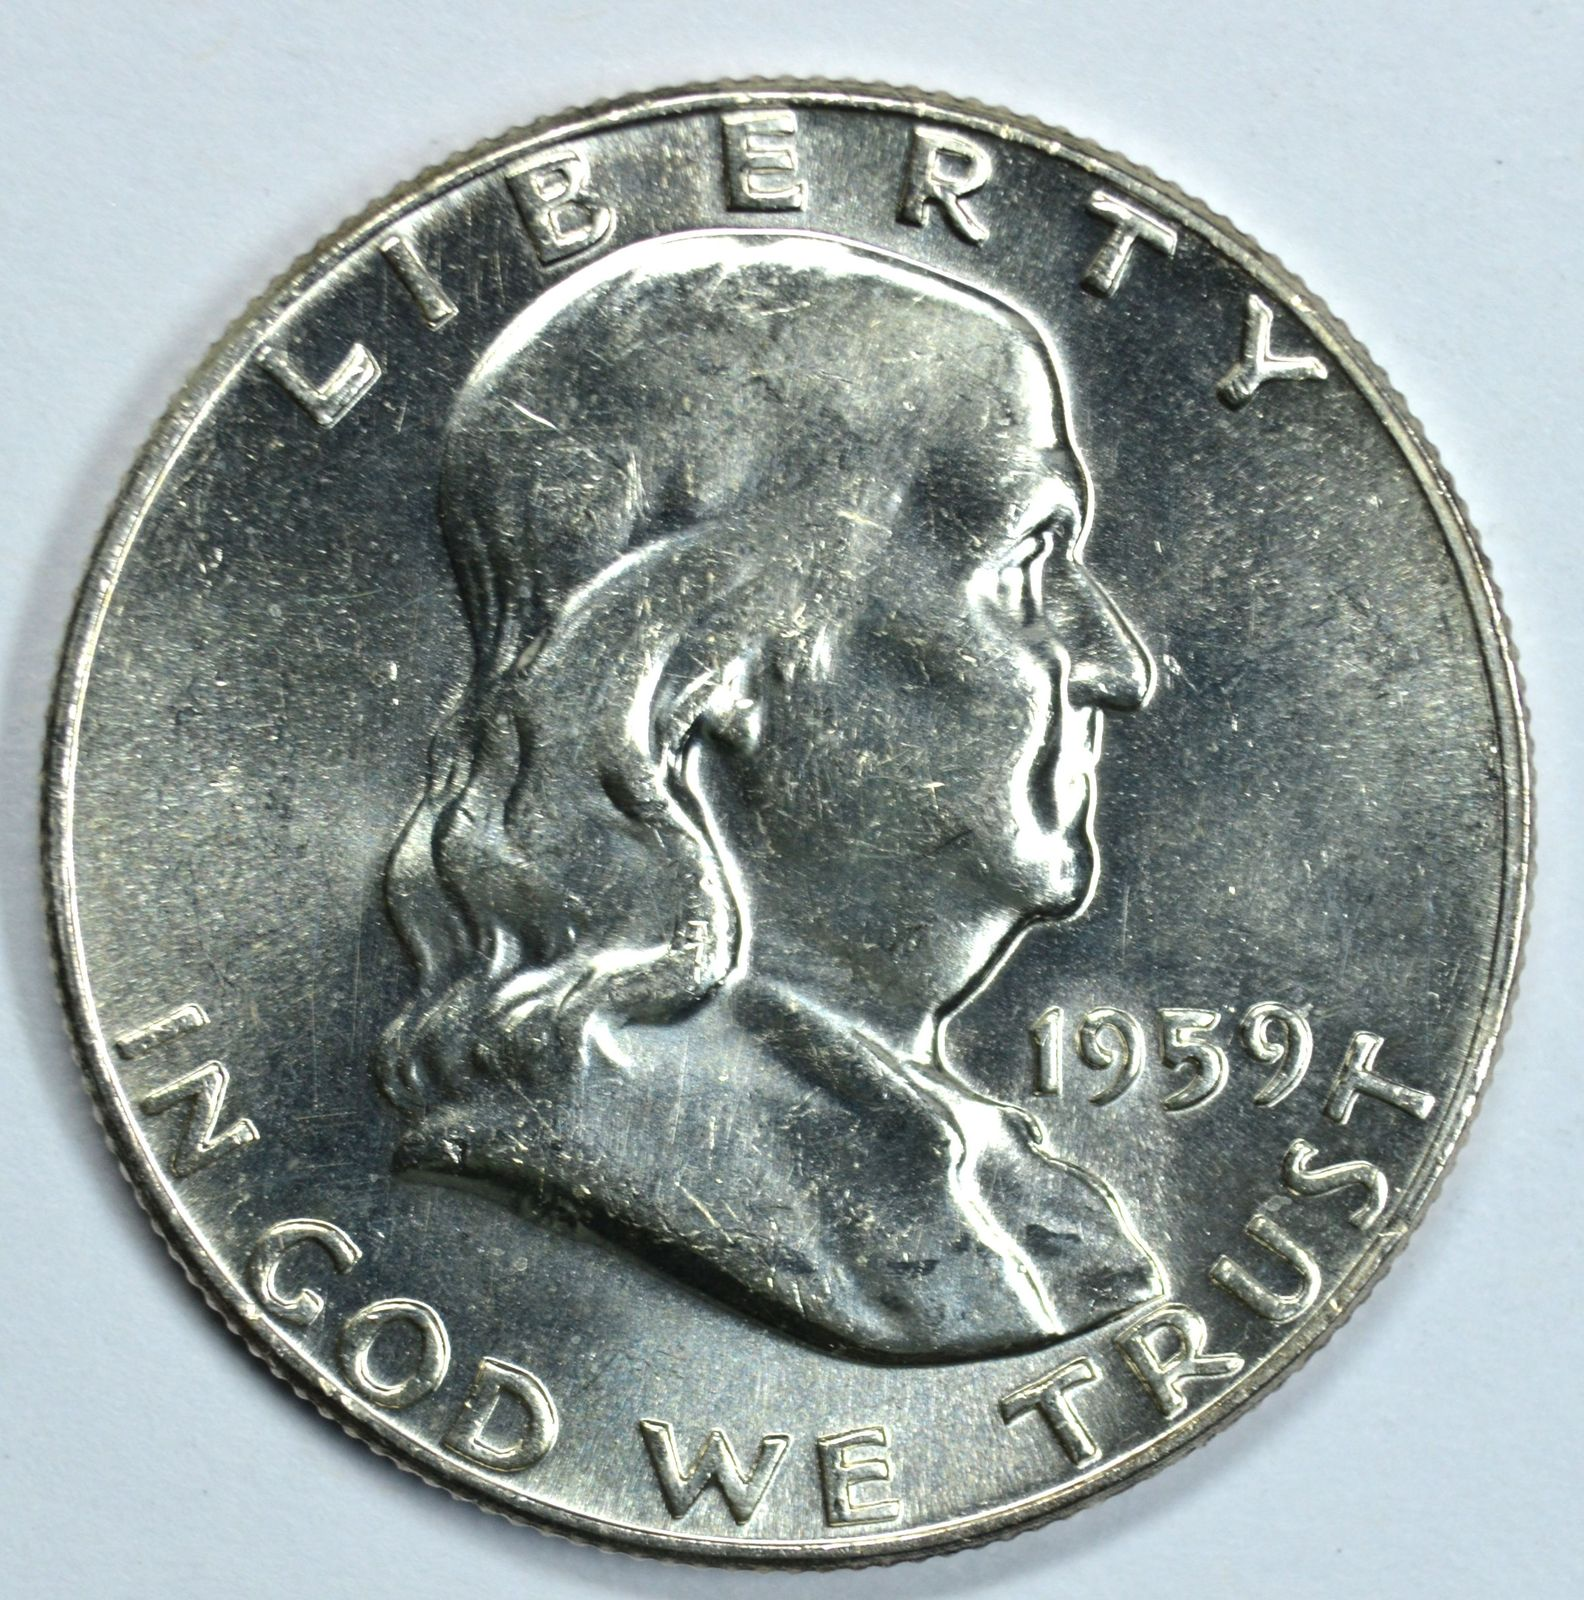 Primary image for 1959 P Franklin uncirculated silver half dollar BU Type 2 Reverse